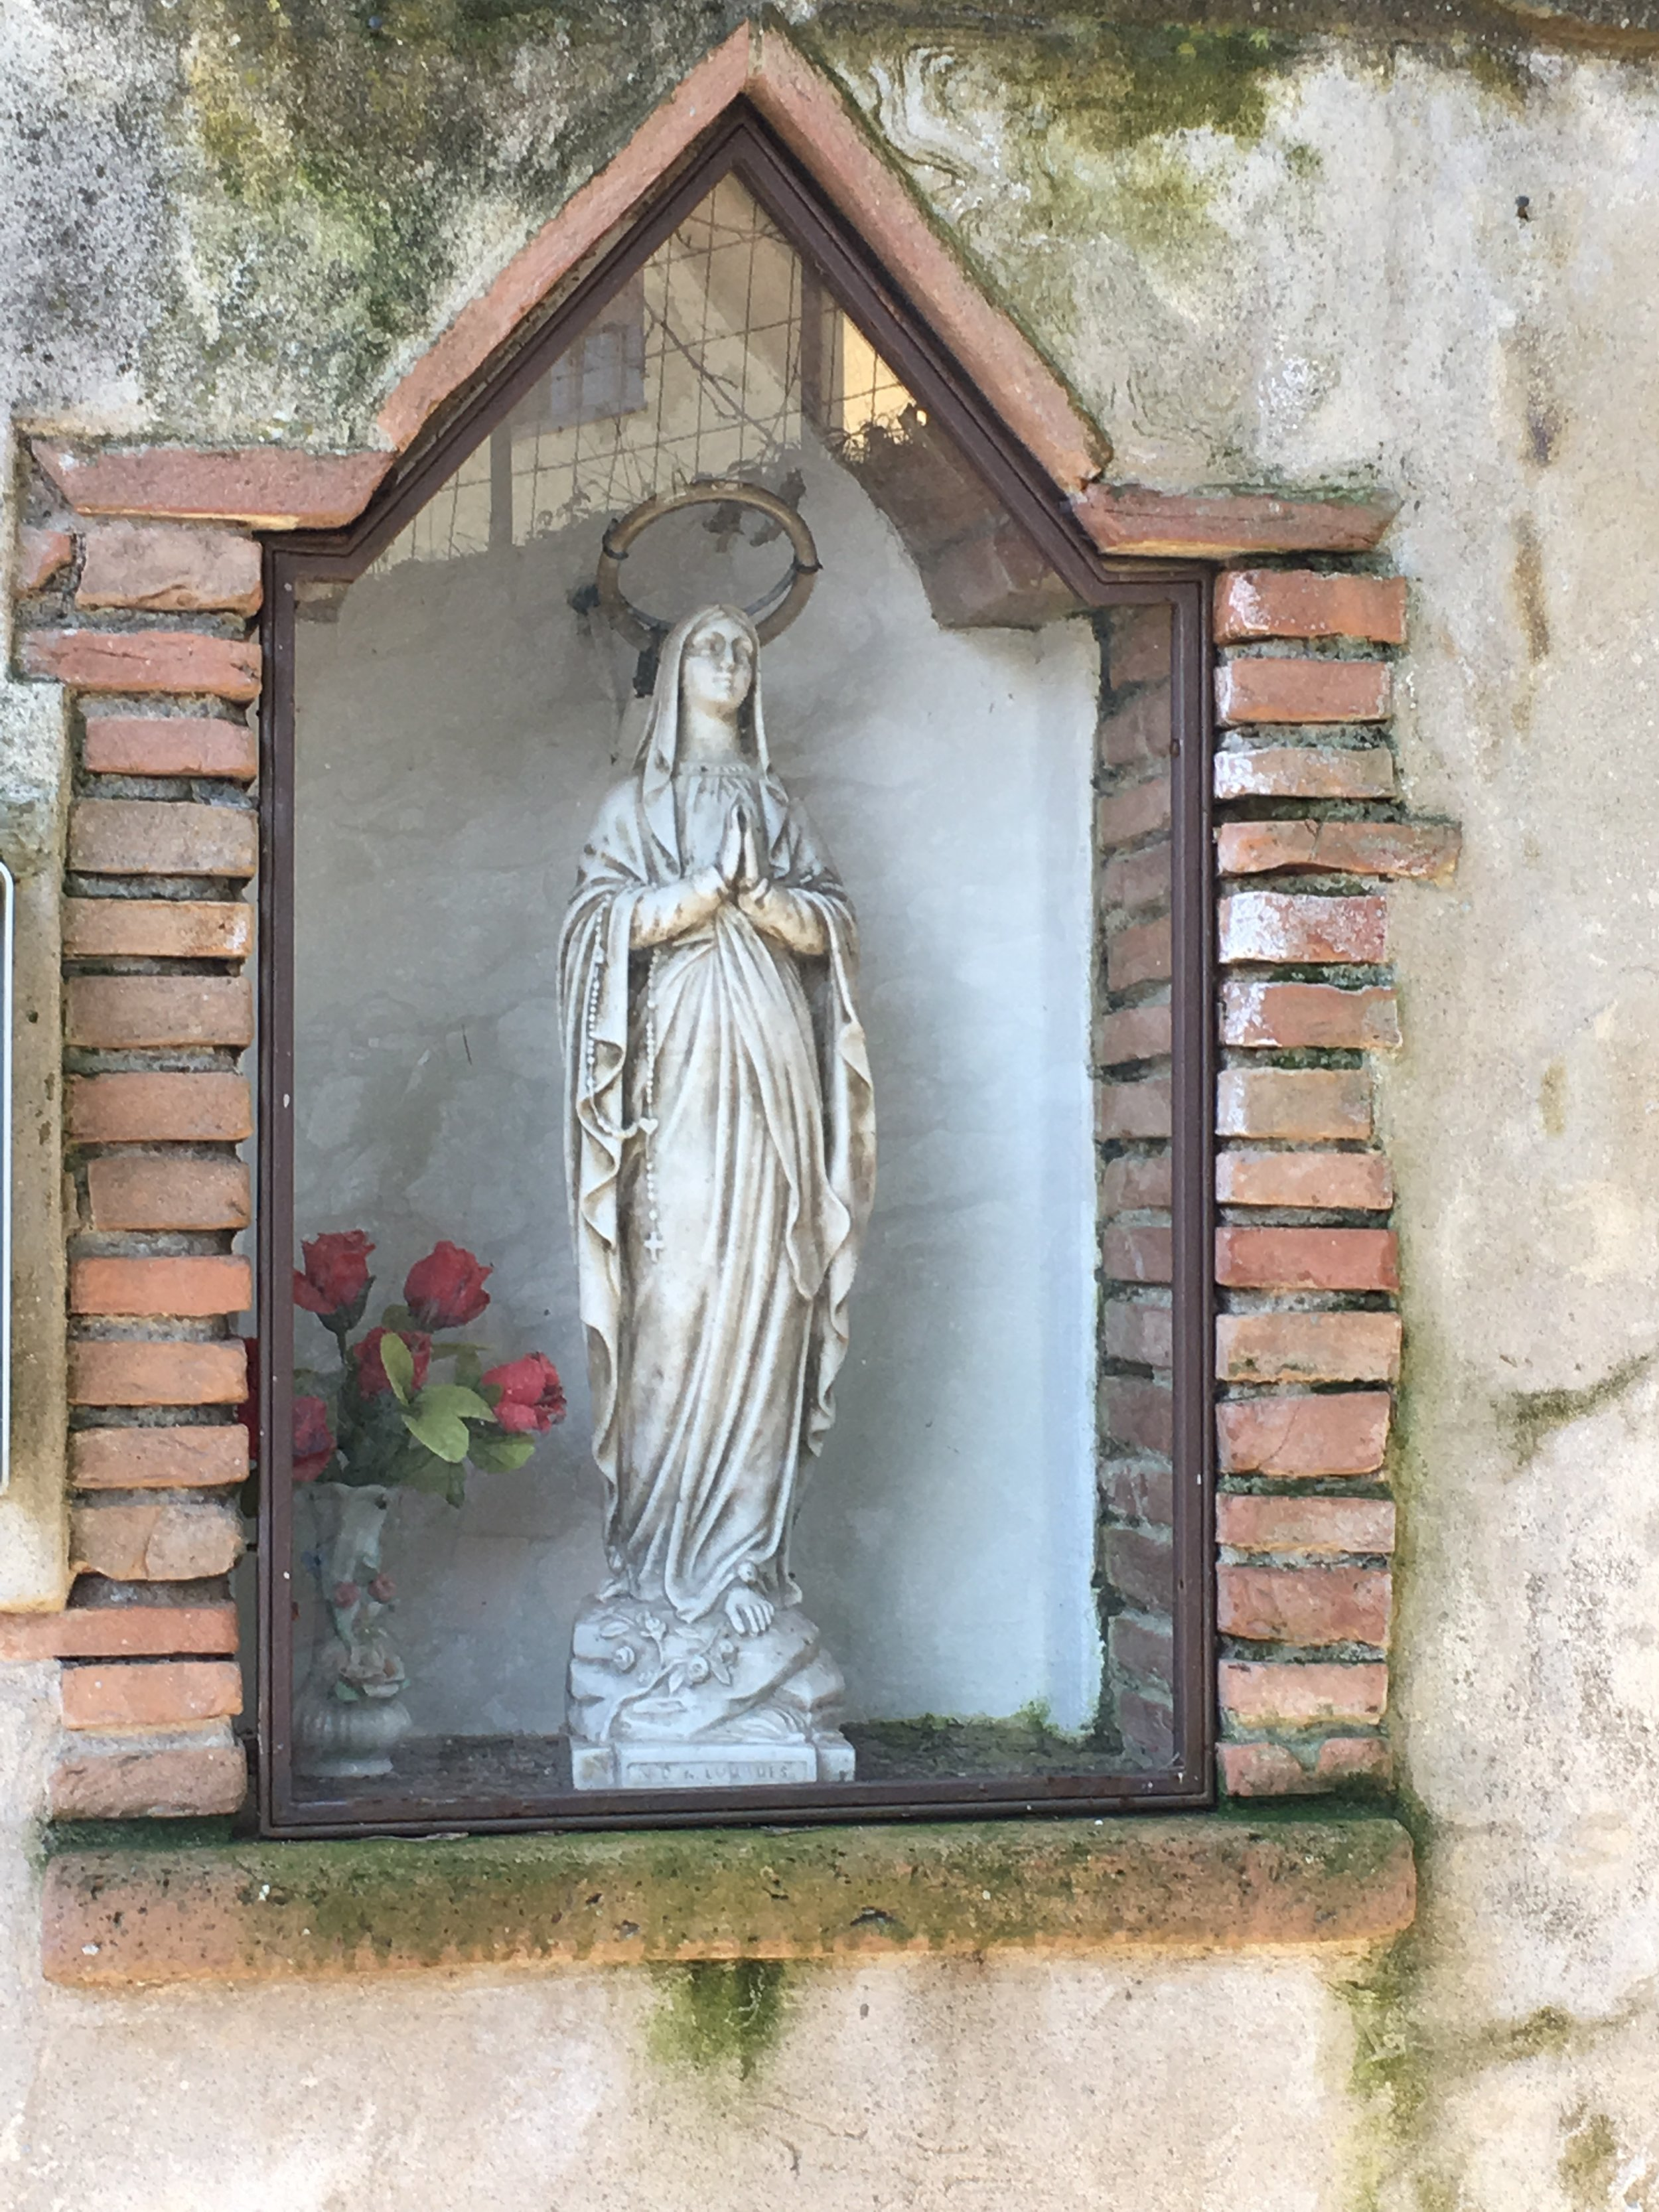 A roadside shrine in Sant'Andrea di Compito